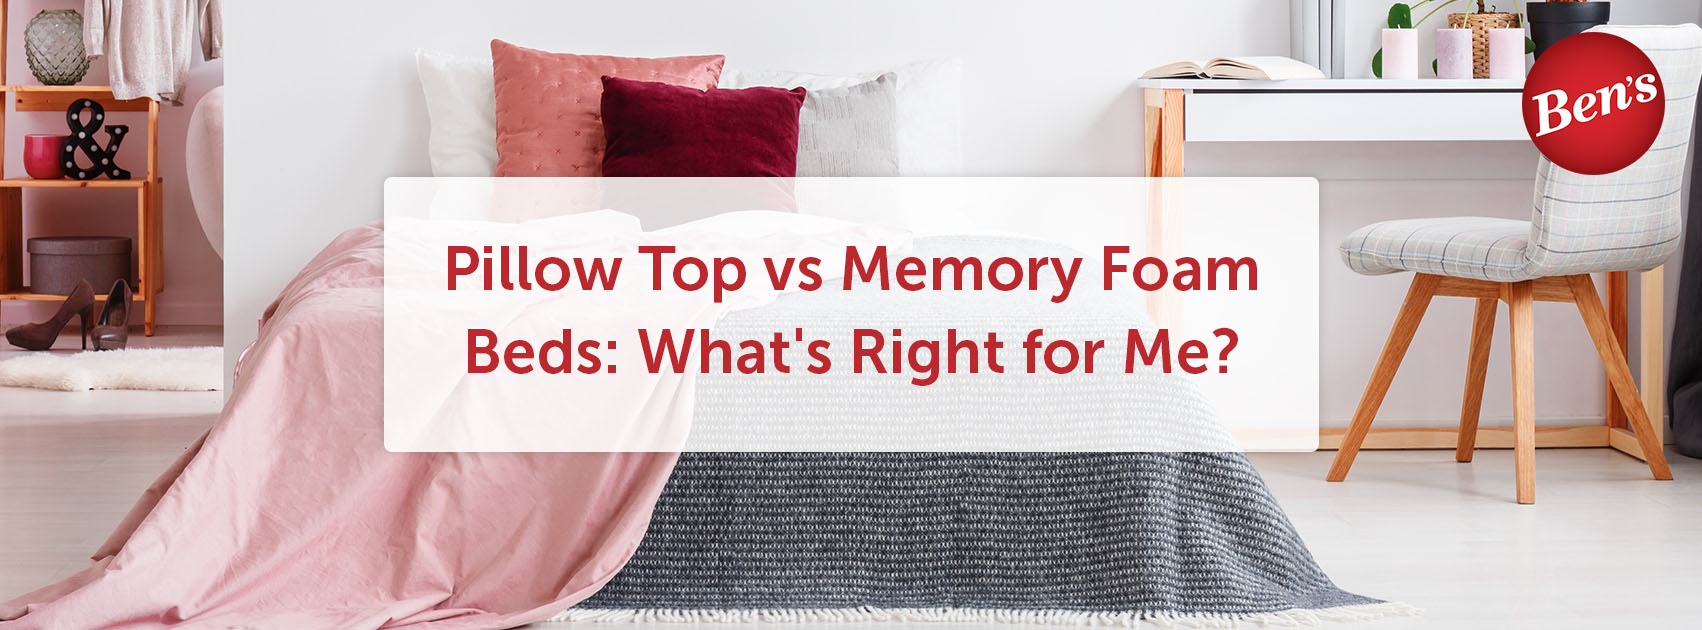 pillow top vs memory foam Pillow Top vs Memory Foam Beds: What's Right for Me? | Ben's pillow top vs memory foam